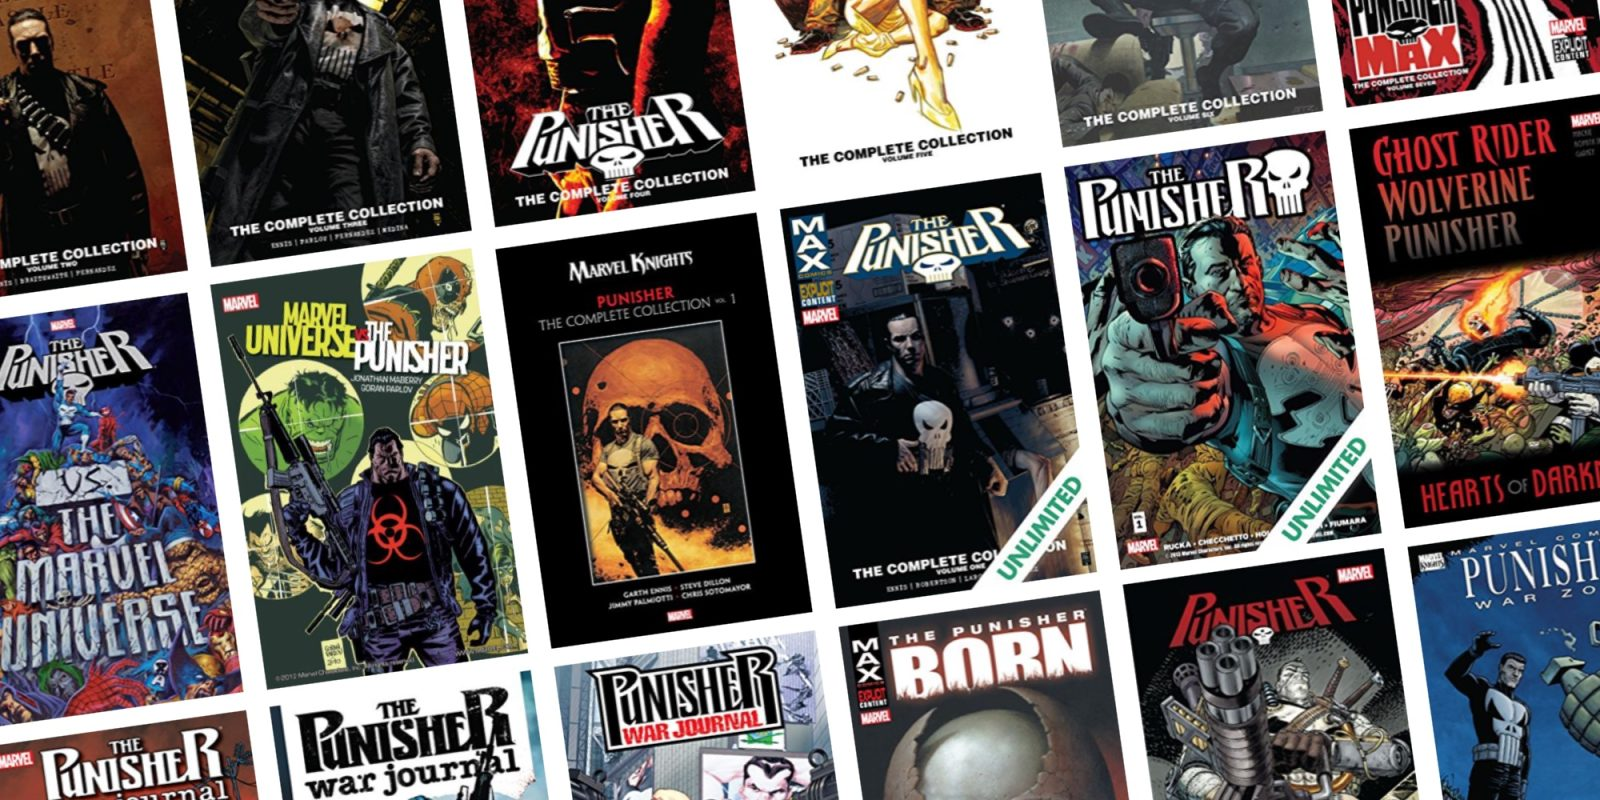 Expand your digital library with up to 67% off Marvel Punisher comics from $1